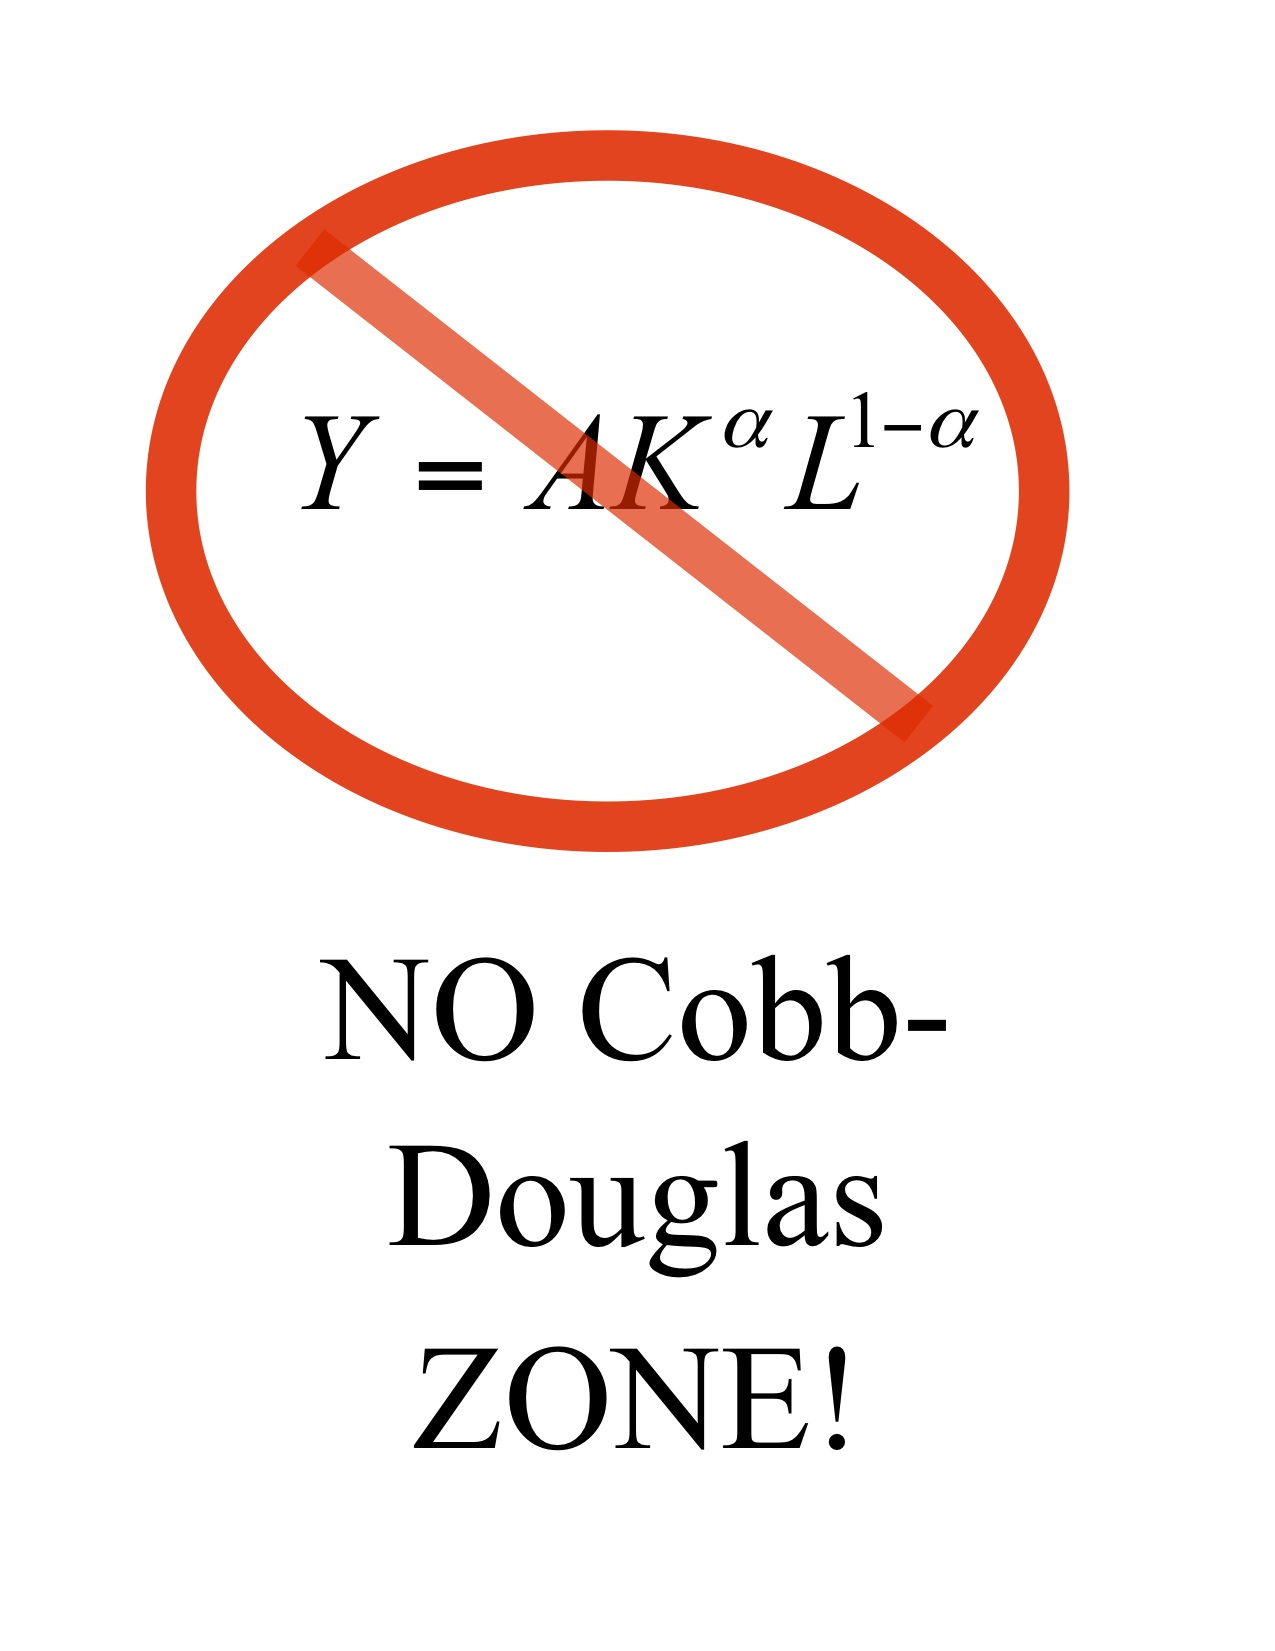 NO Cobb Douglas zone